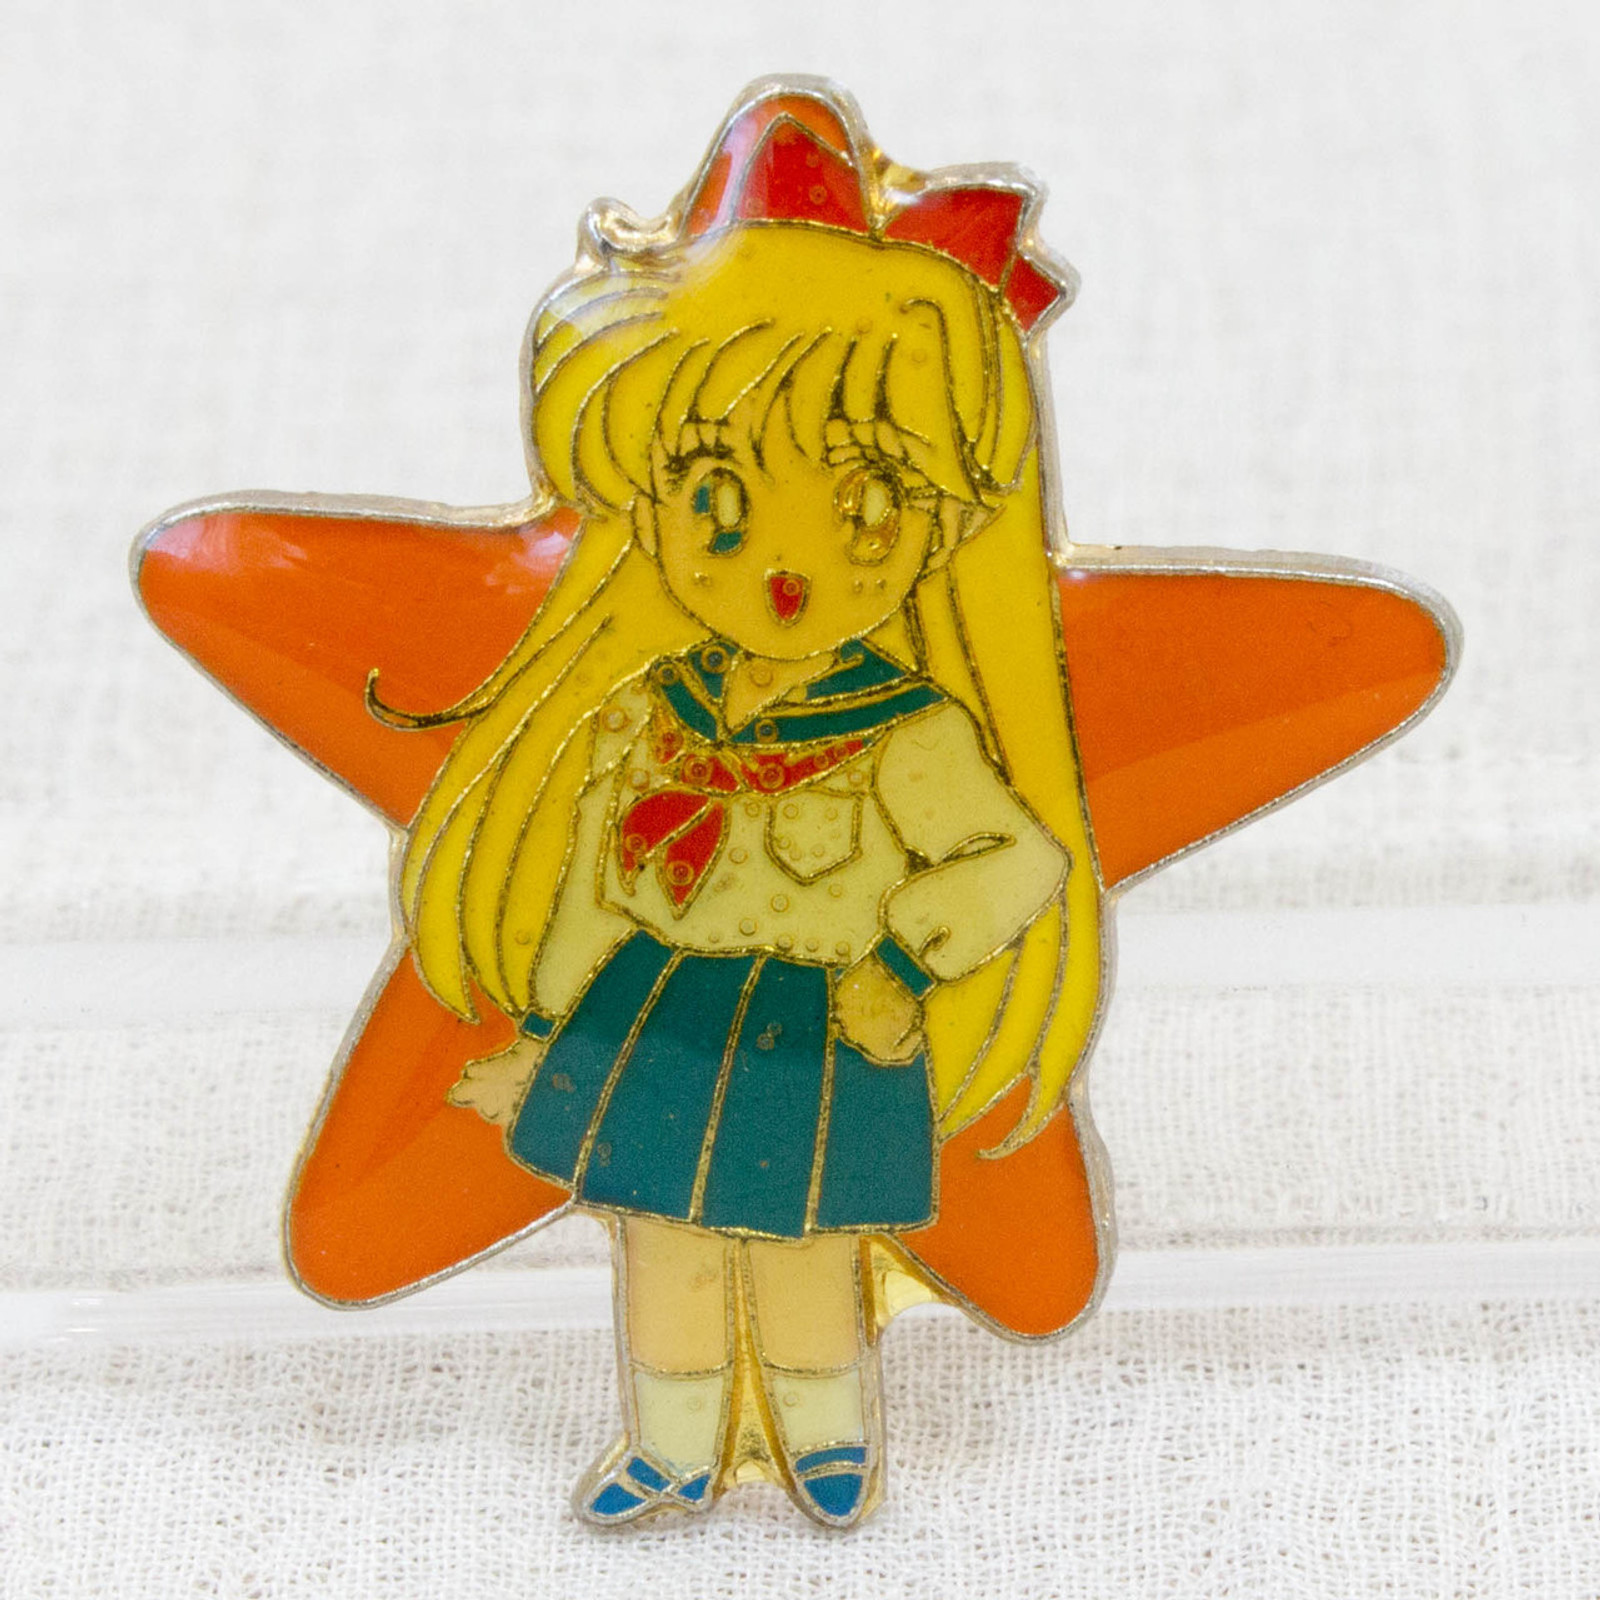 Sailor Moon Minako Aino (Sailor Venus) Metal Pins Badge JAPAN ANIME 1